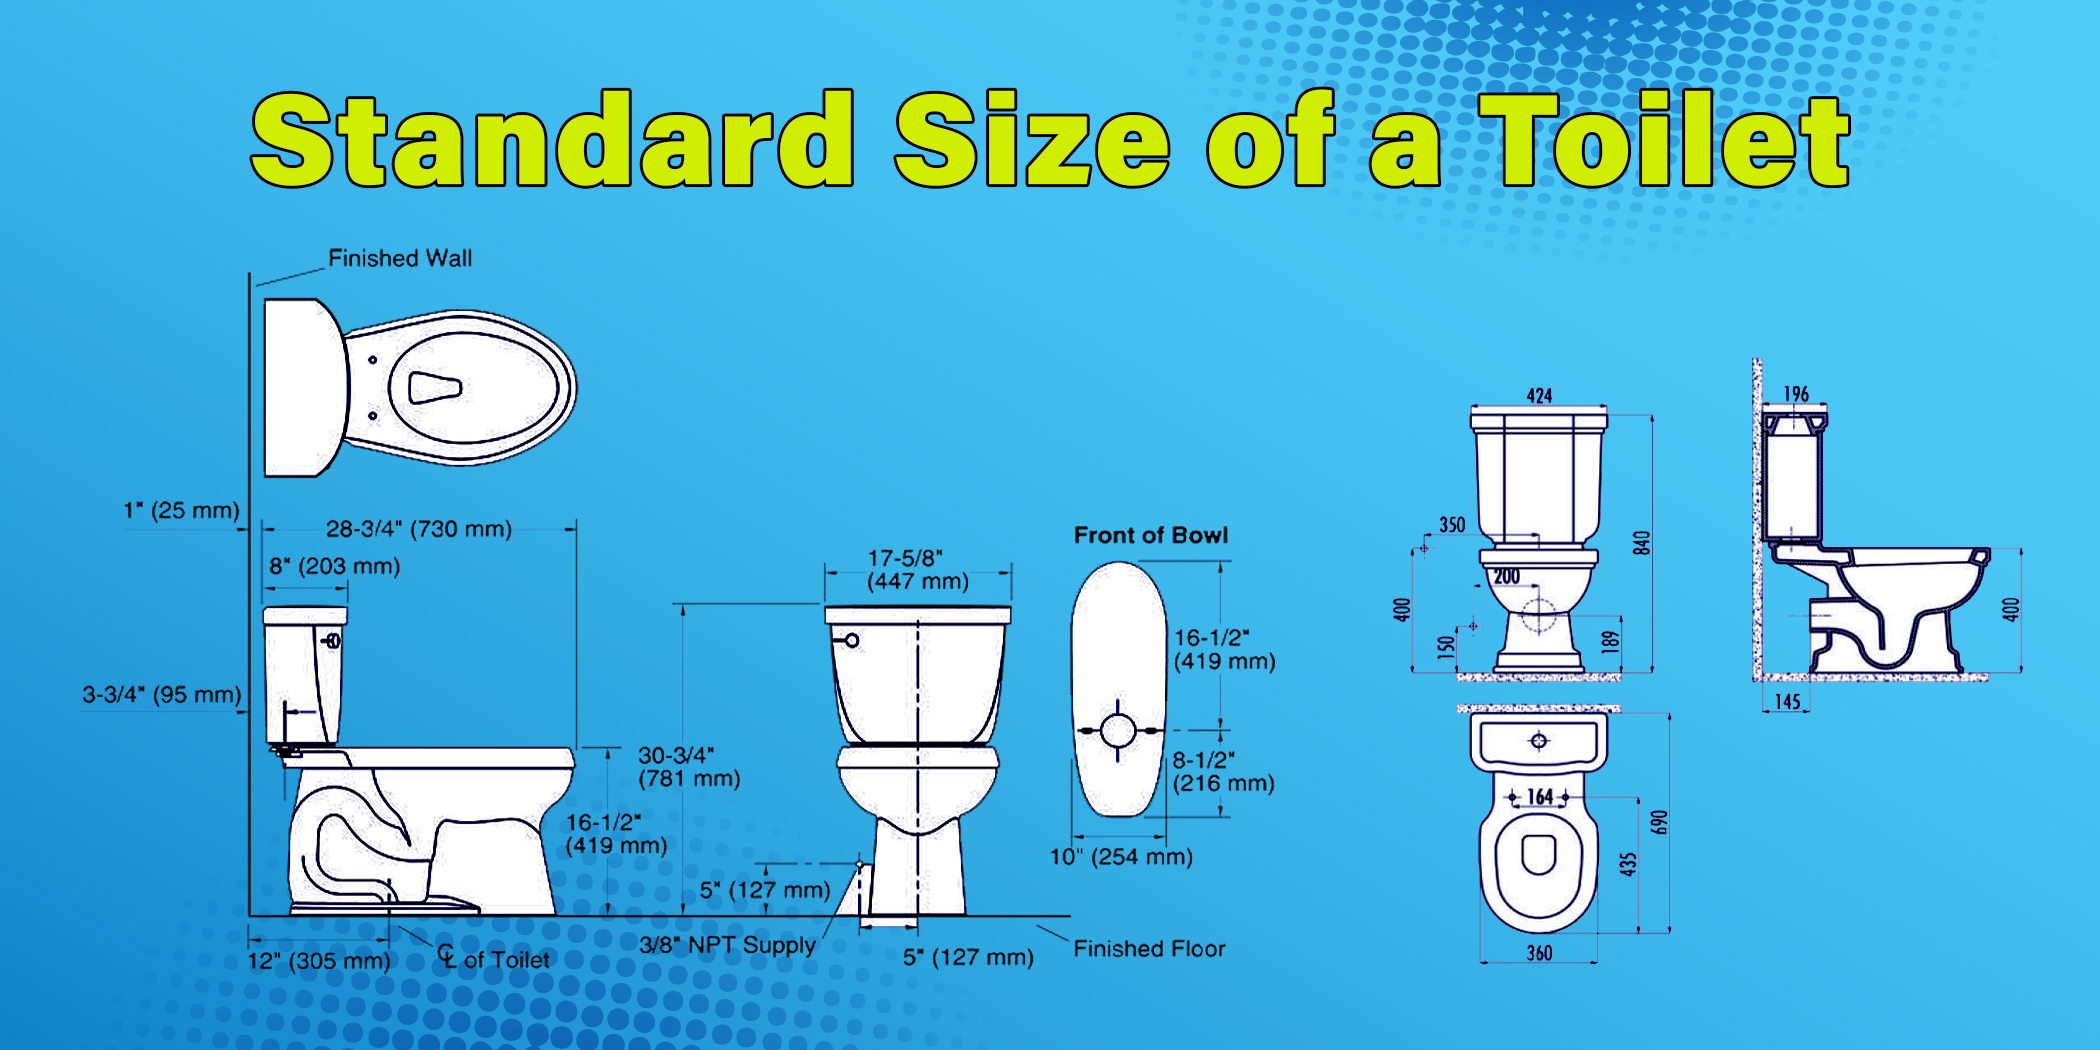 Standard Size of a Toilet